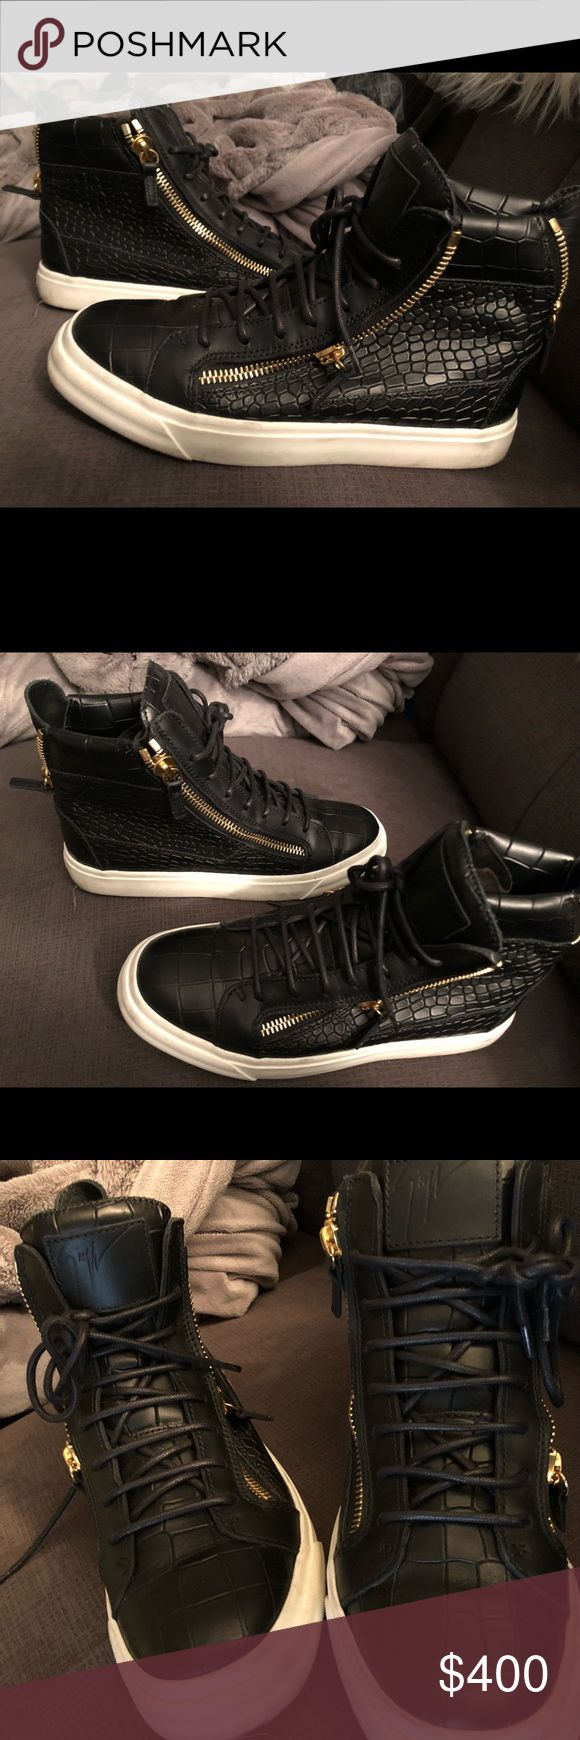 Black python calfskin high tops Black ladies high top sneakers with Gold accent zippers Giuseppe Zanotti Shoes Sneakers